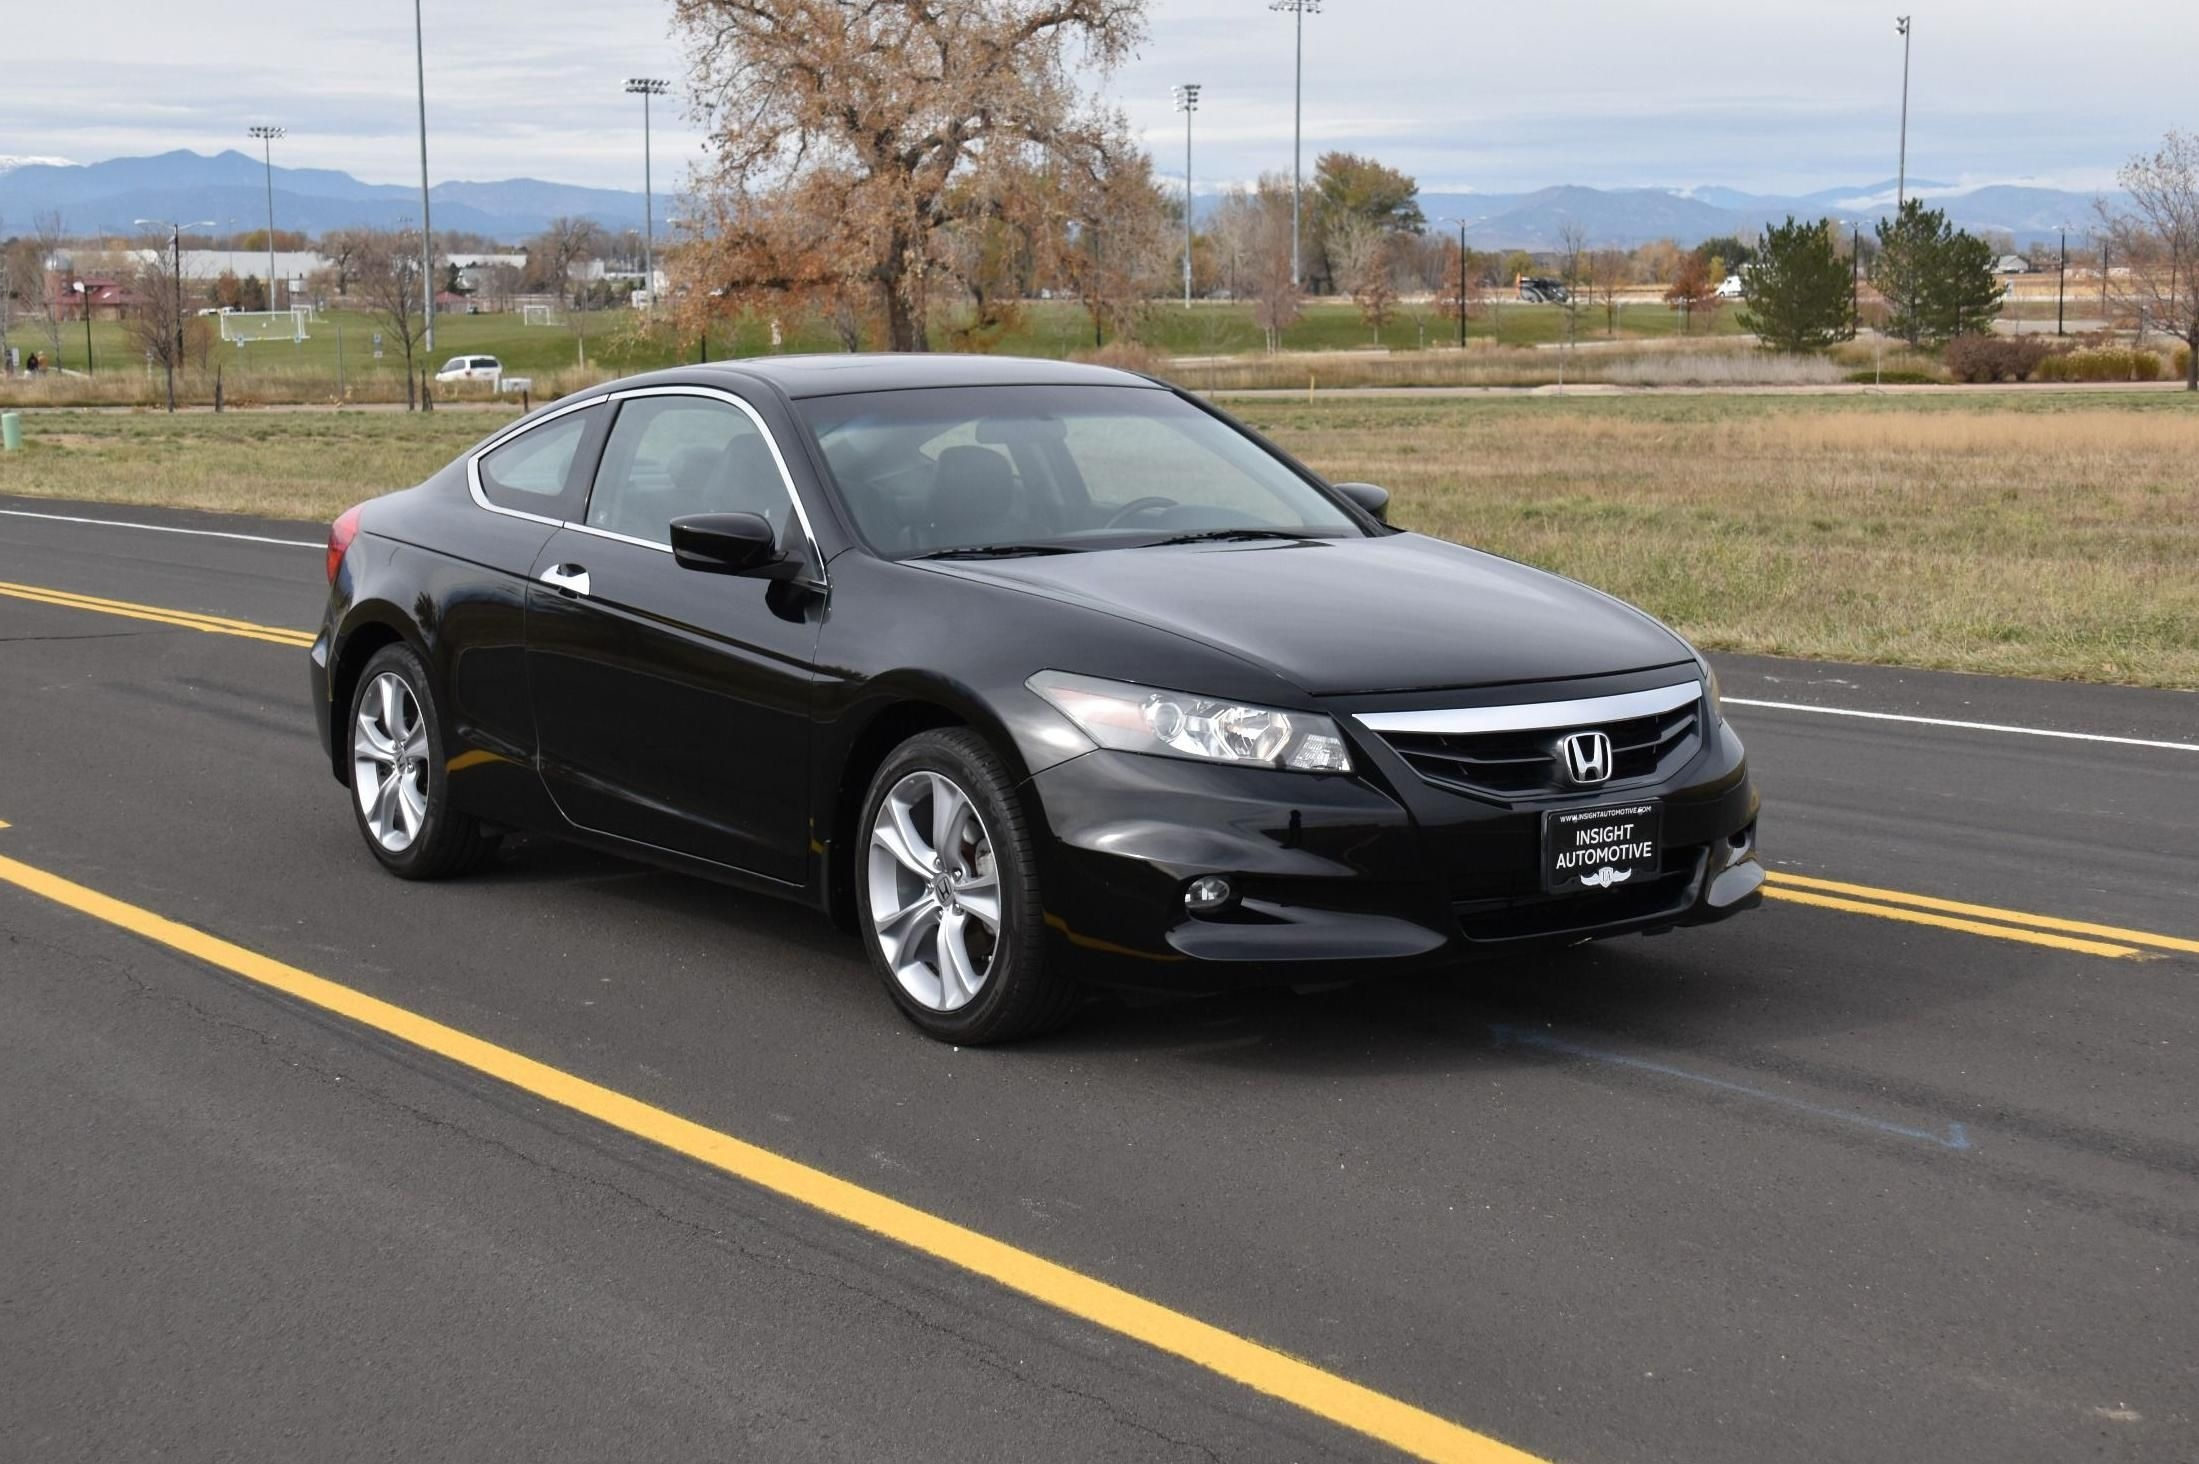 Honda Accord Modified Fresh 2012 Honda Accord Photos-693 Of New Honda Accord Modified